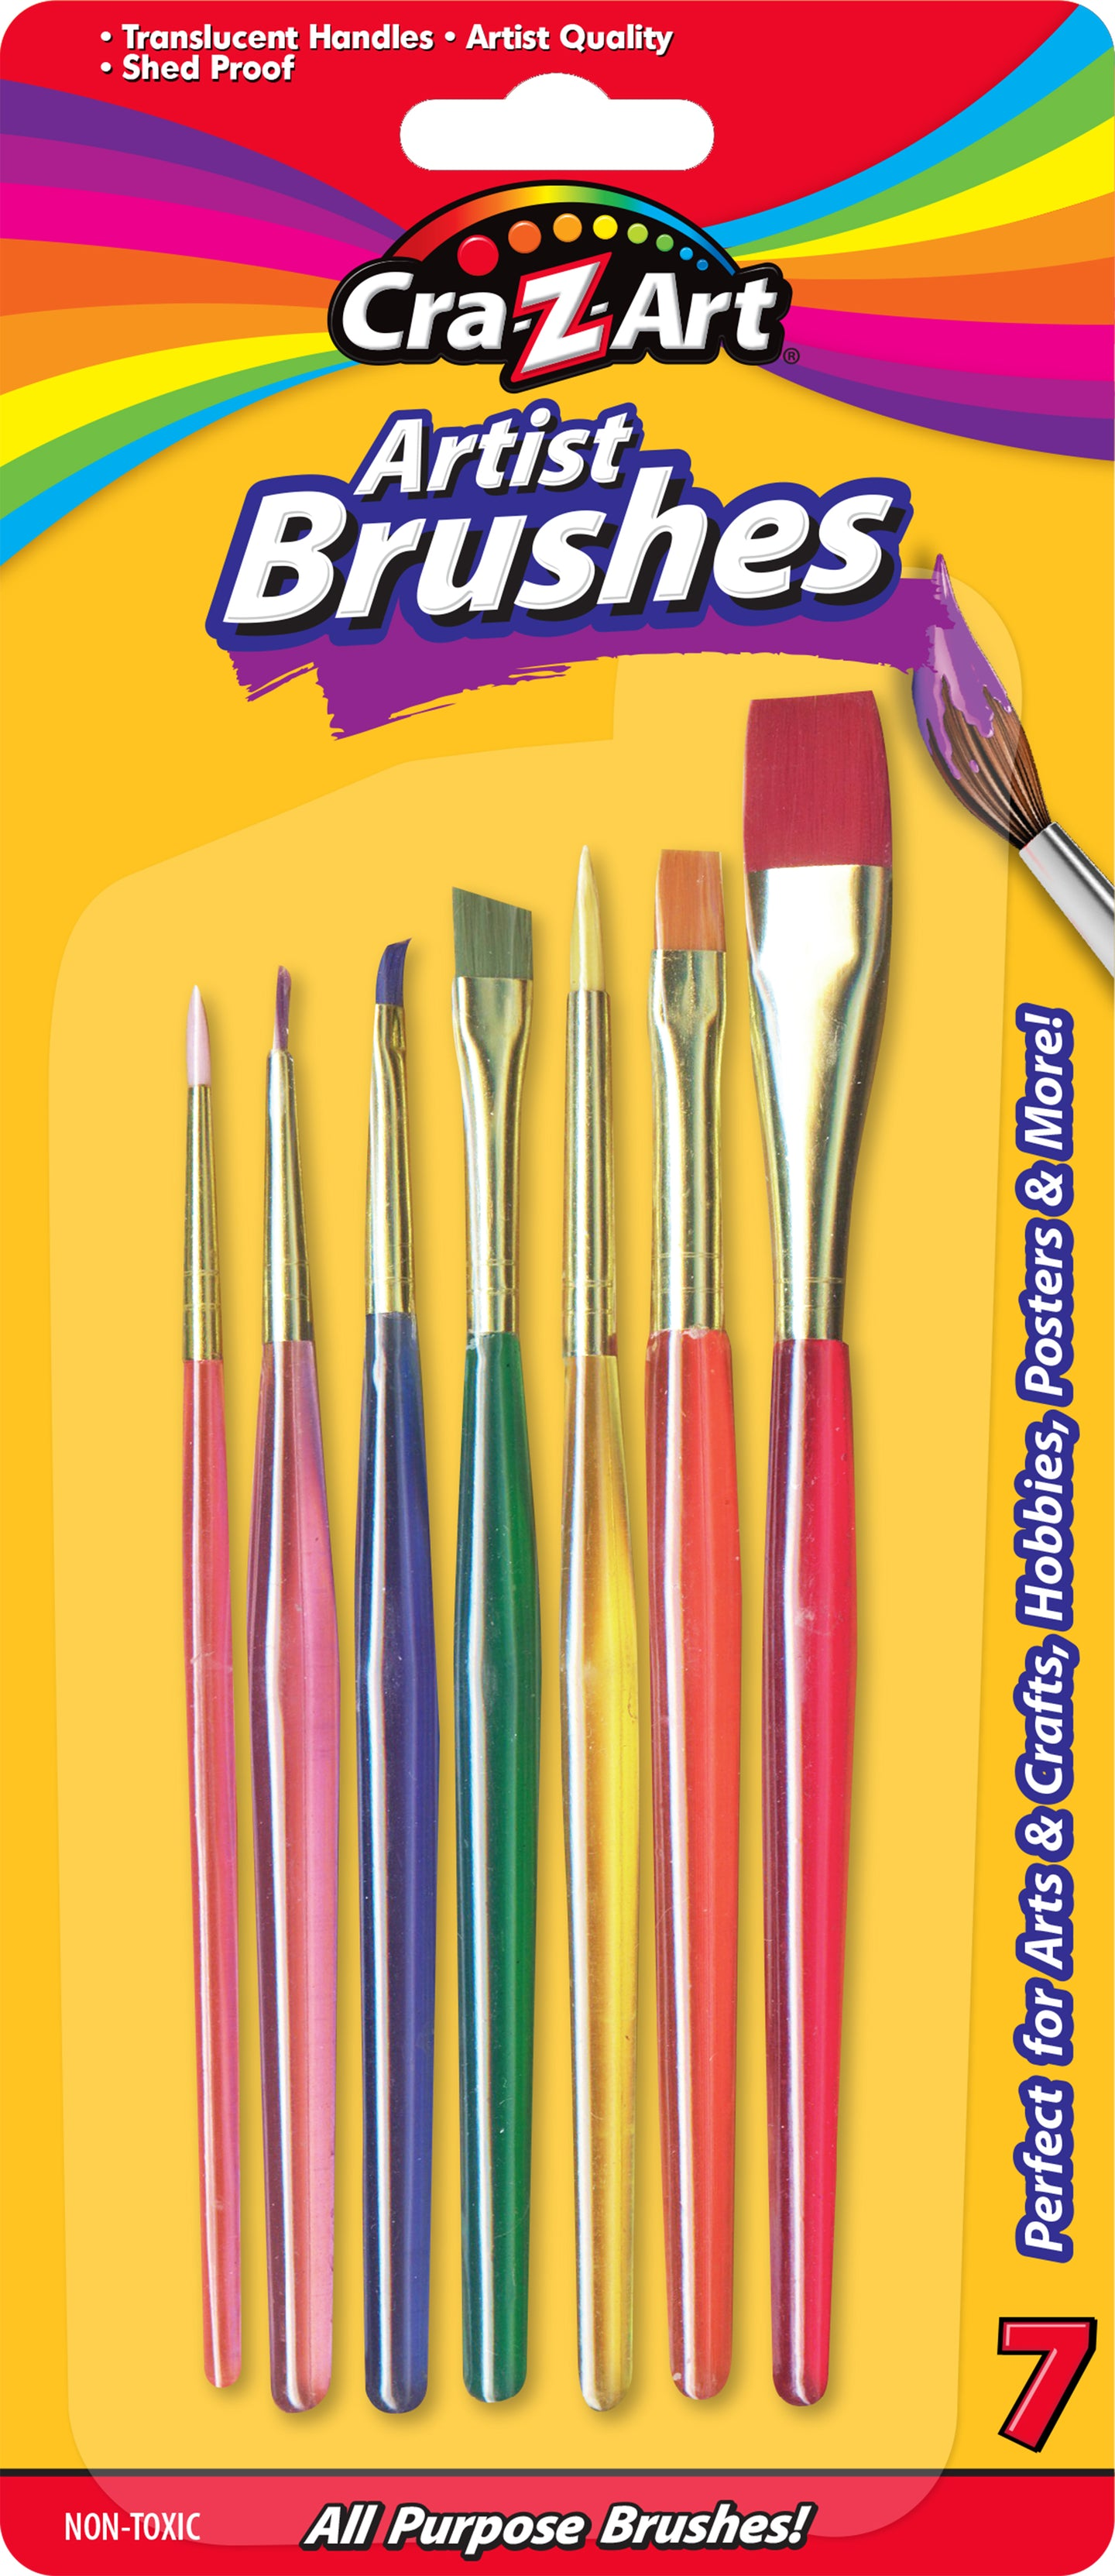 Artist Brushes -7 Count